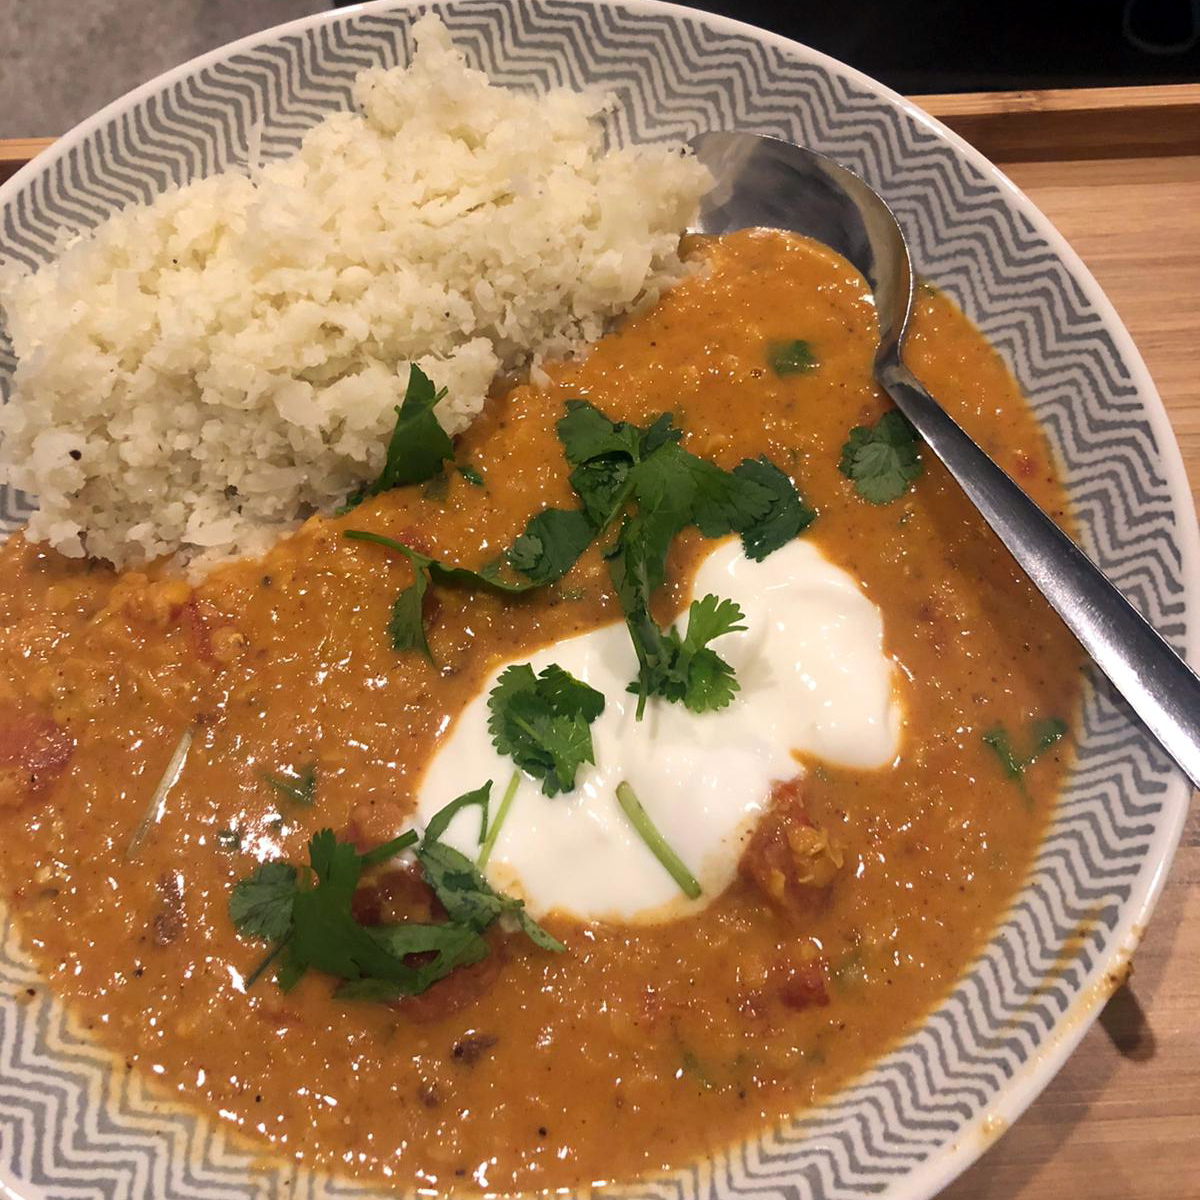 Red lentil dhaal with cauliflower rice in a bowl